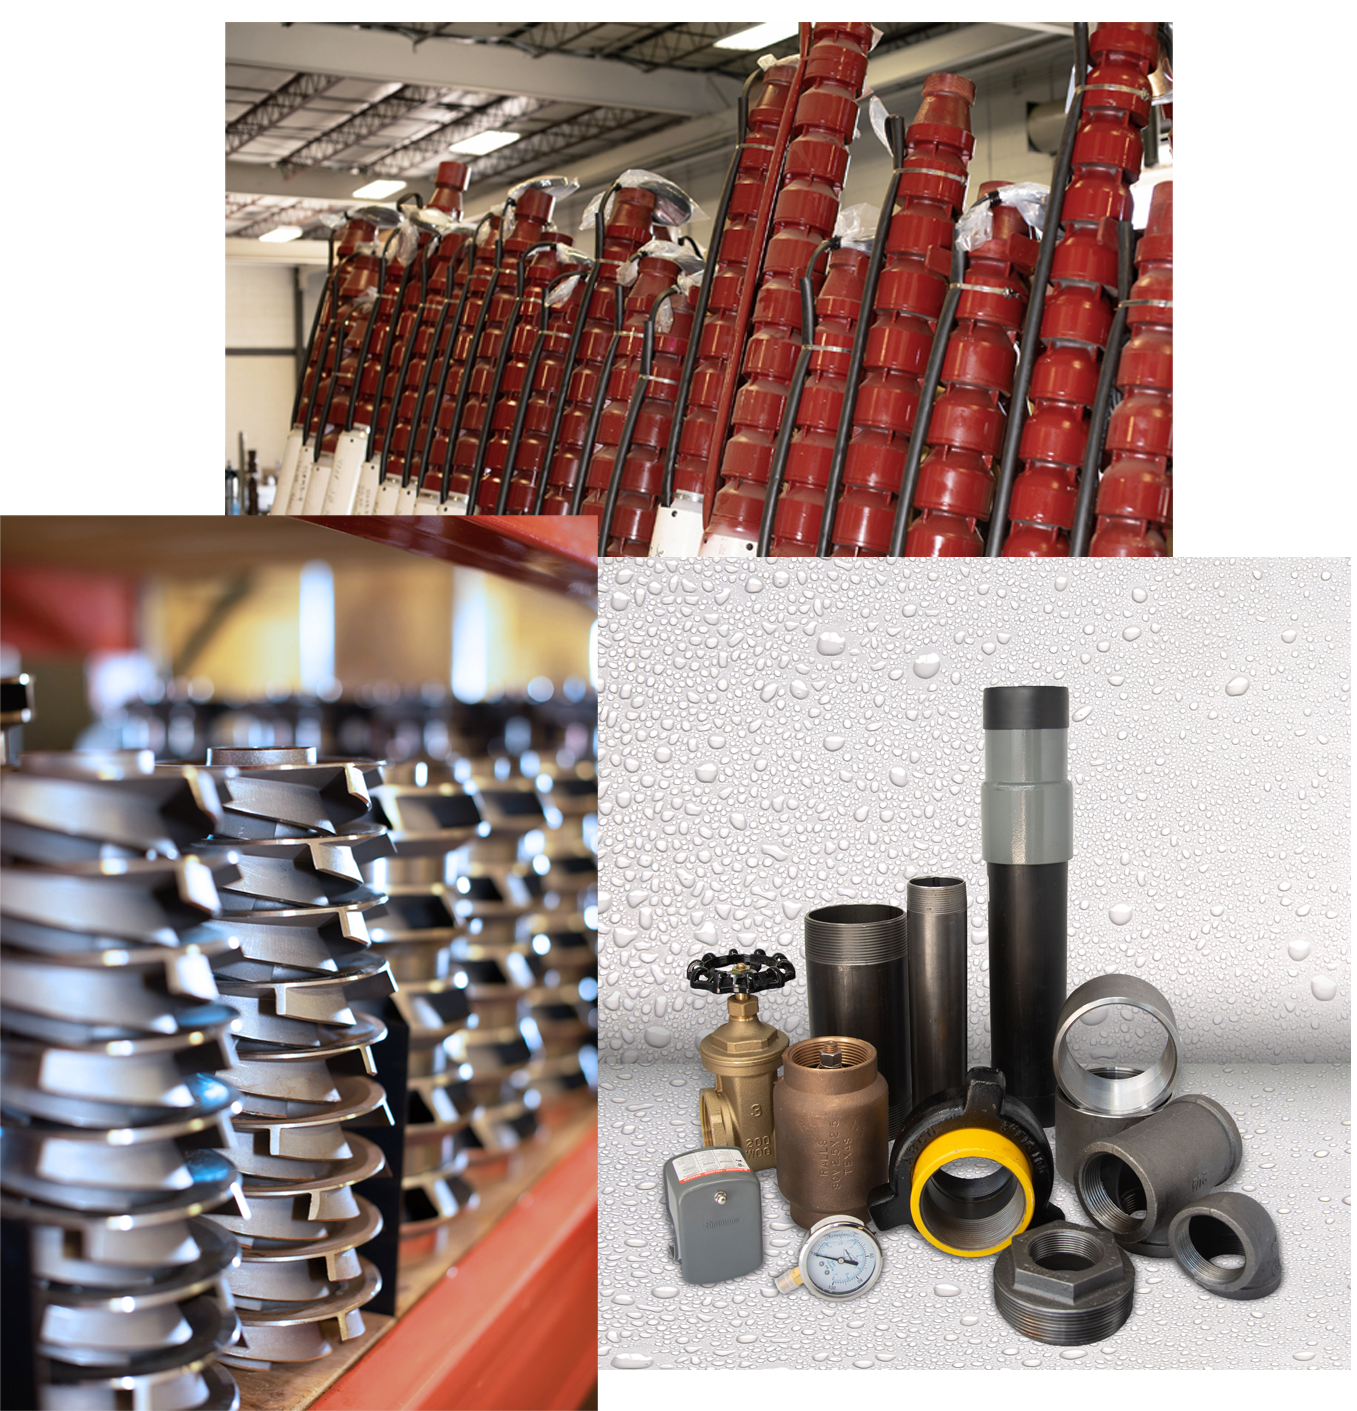 The One Stop Shop For Pumps and Accessories - We make the contractor our primary focus by being a one-stop-shop for industry-leading products and knowledge. We've paired the company you know and love with uncompromising customer service. Our diversified vendor support gives us the ability to stay ahead of the curve and allows us to provide the quality assurance to fulfill all your pump and water supply needs.